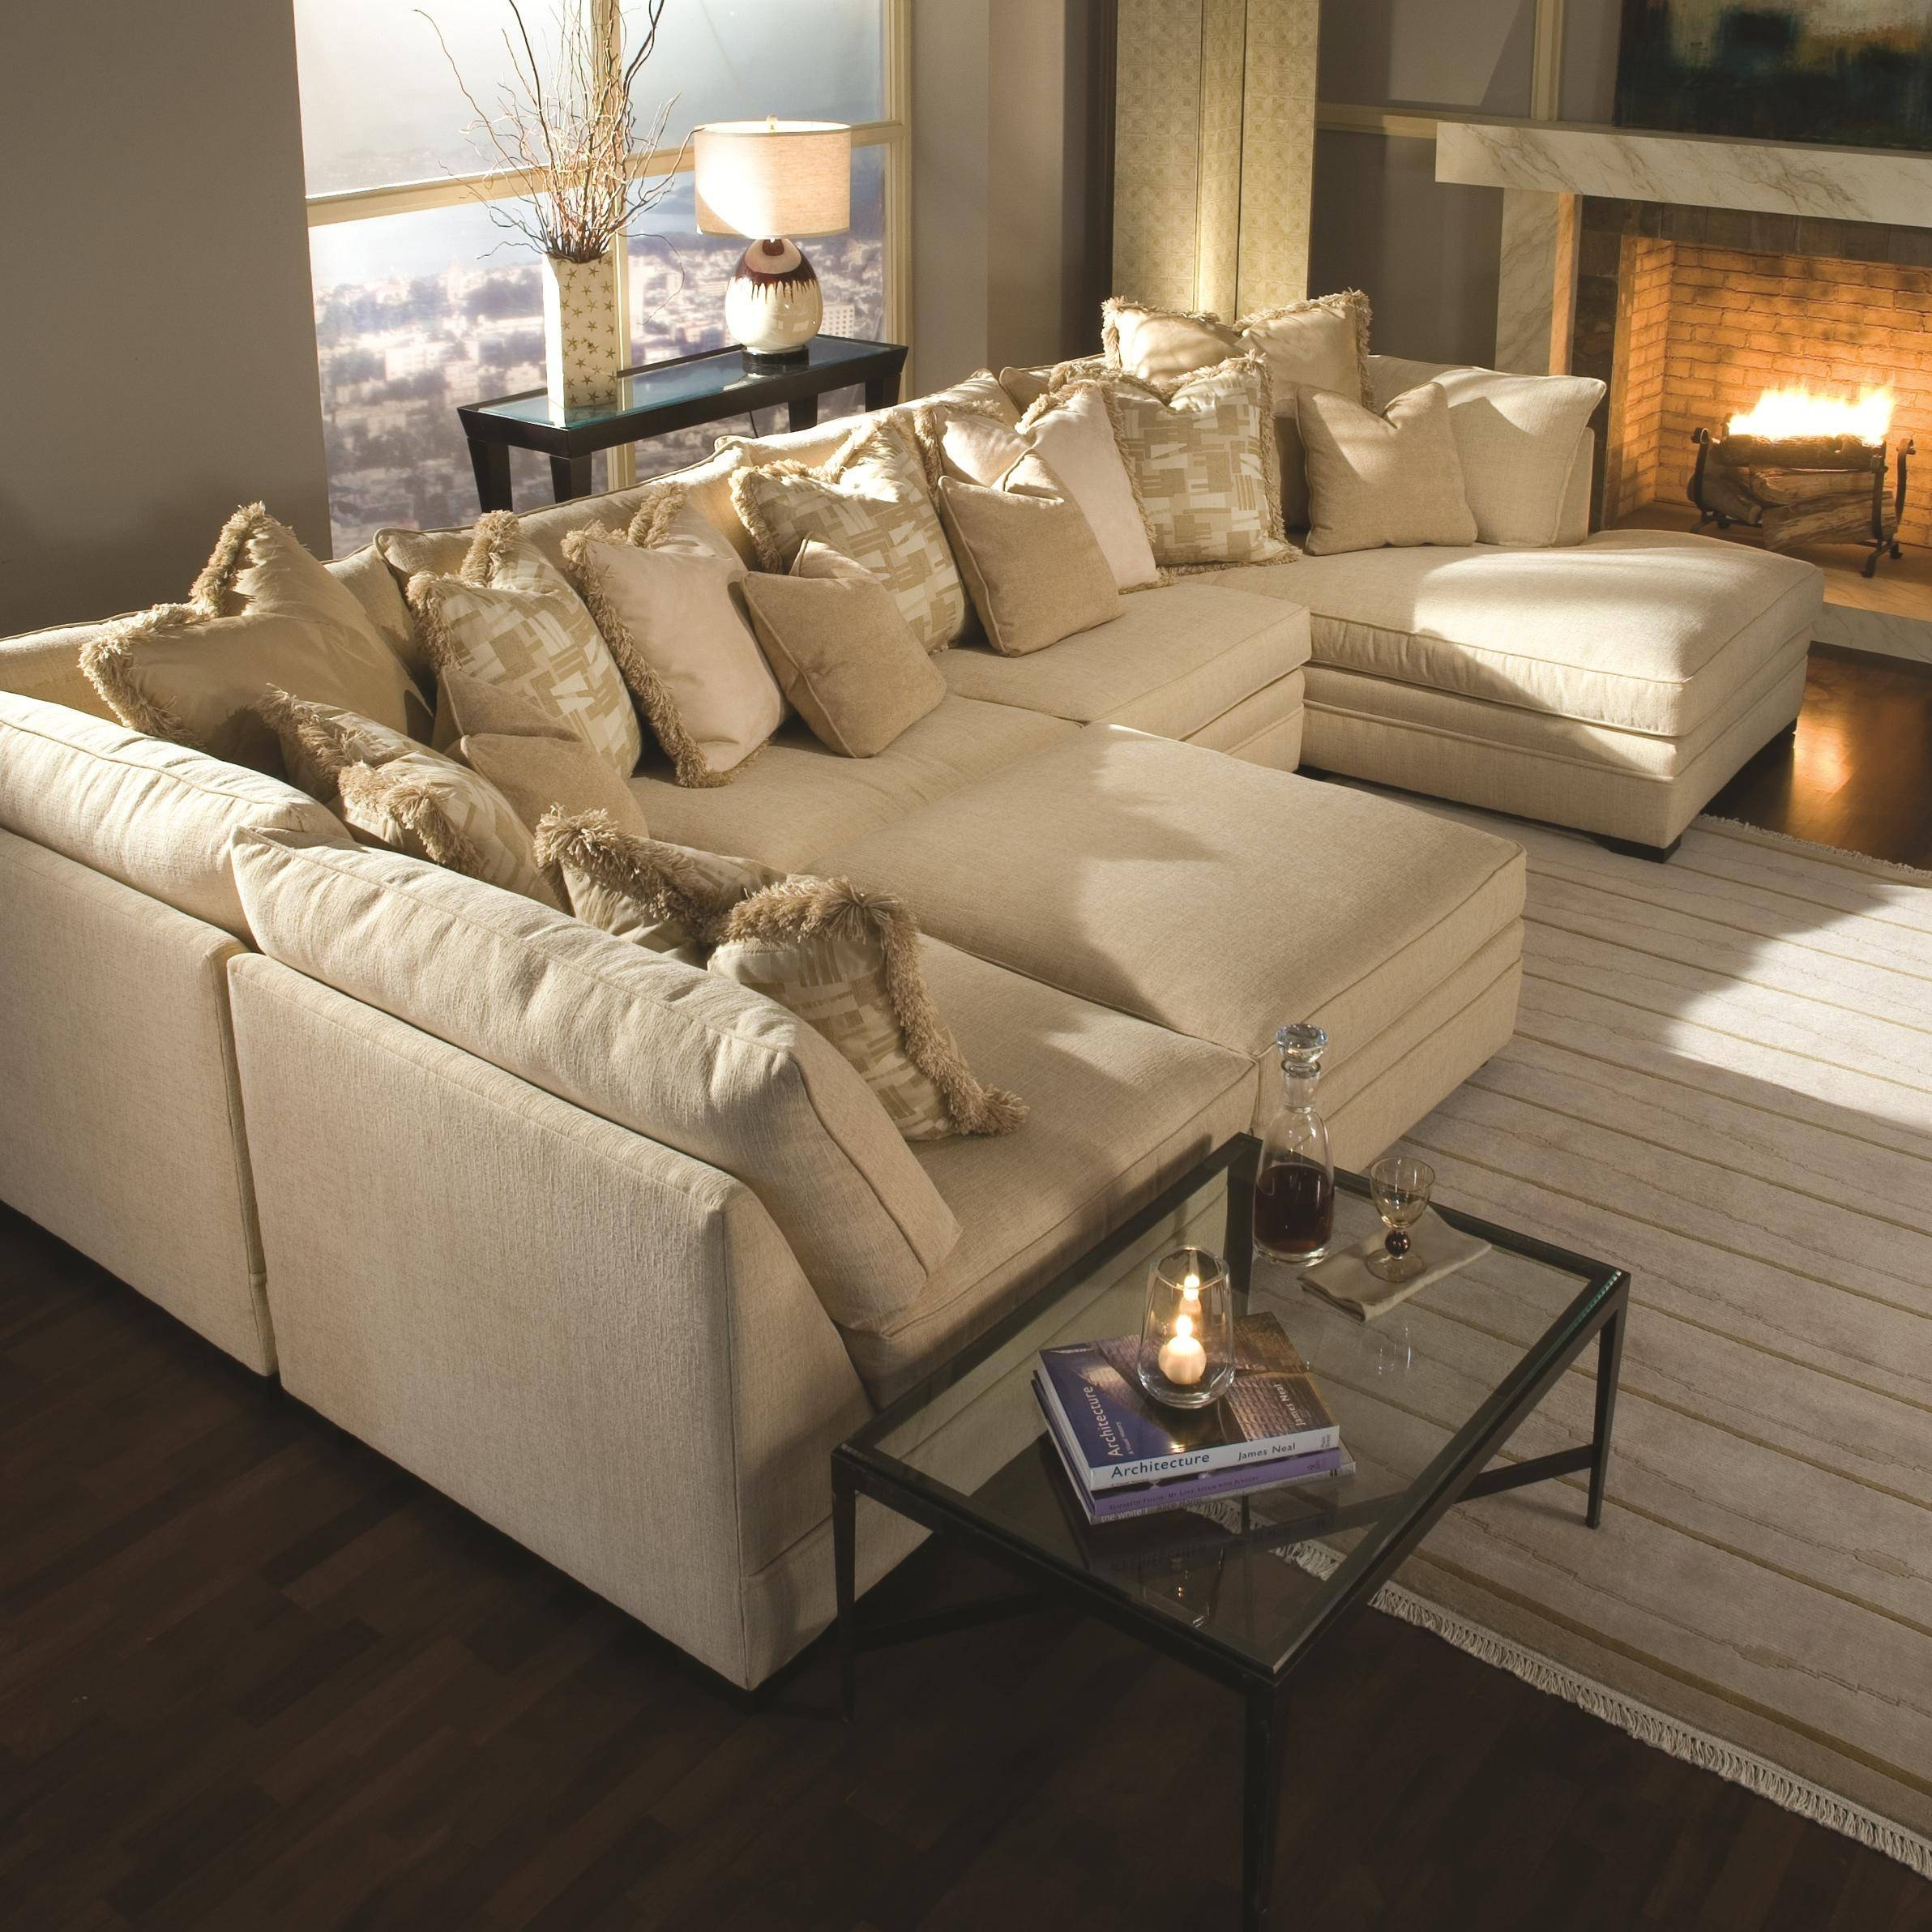 Interior: Admirable Oversized Sectional Sofas With Oversized intended for Oversized Sectional Sofa (Image 14 of 30)